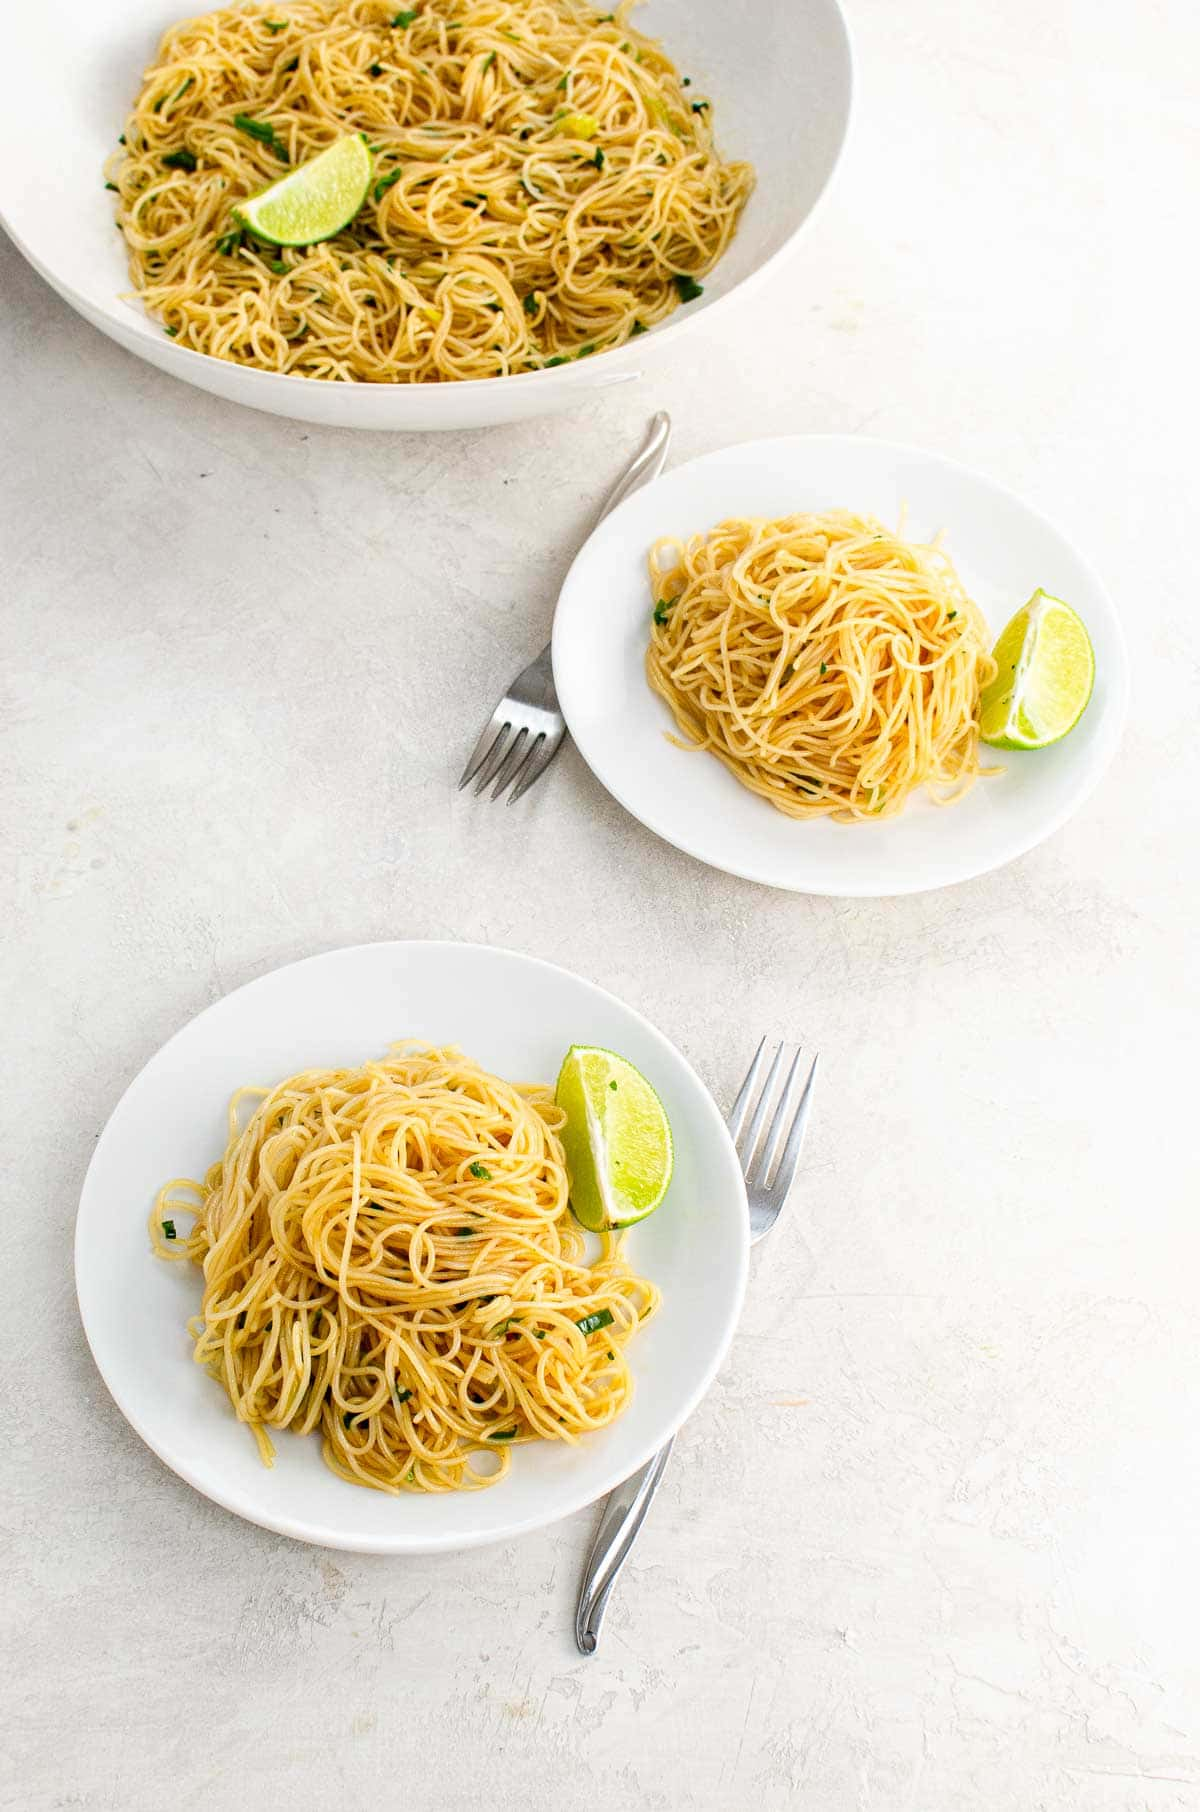 Servings of a vegan rice noodles recipe on white plates